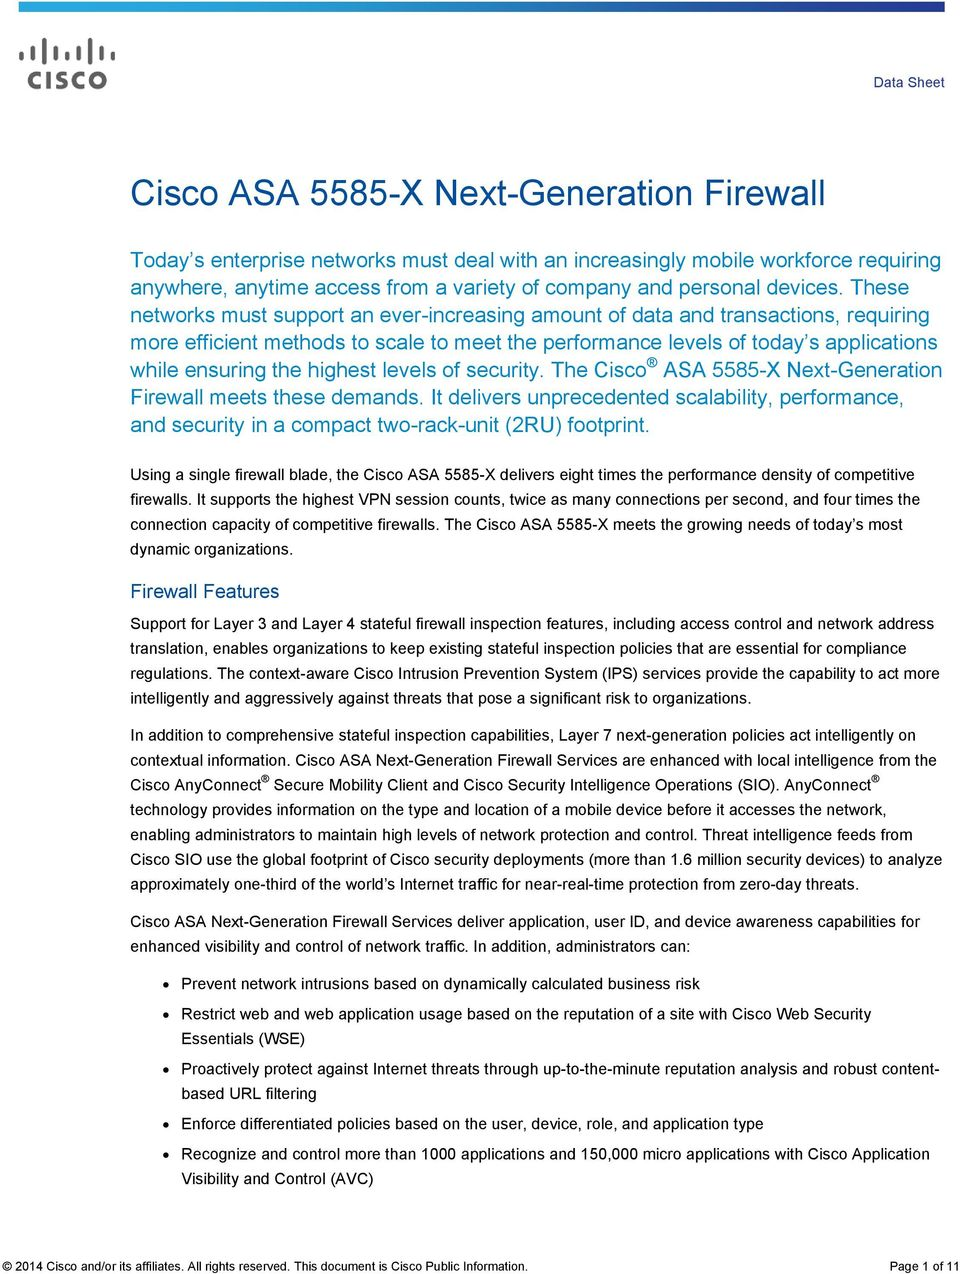 highest levels of security. The Cisco ASA 5585-X Next-Generation Firewall meets these demands.